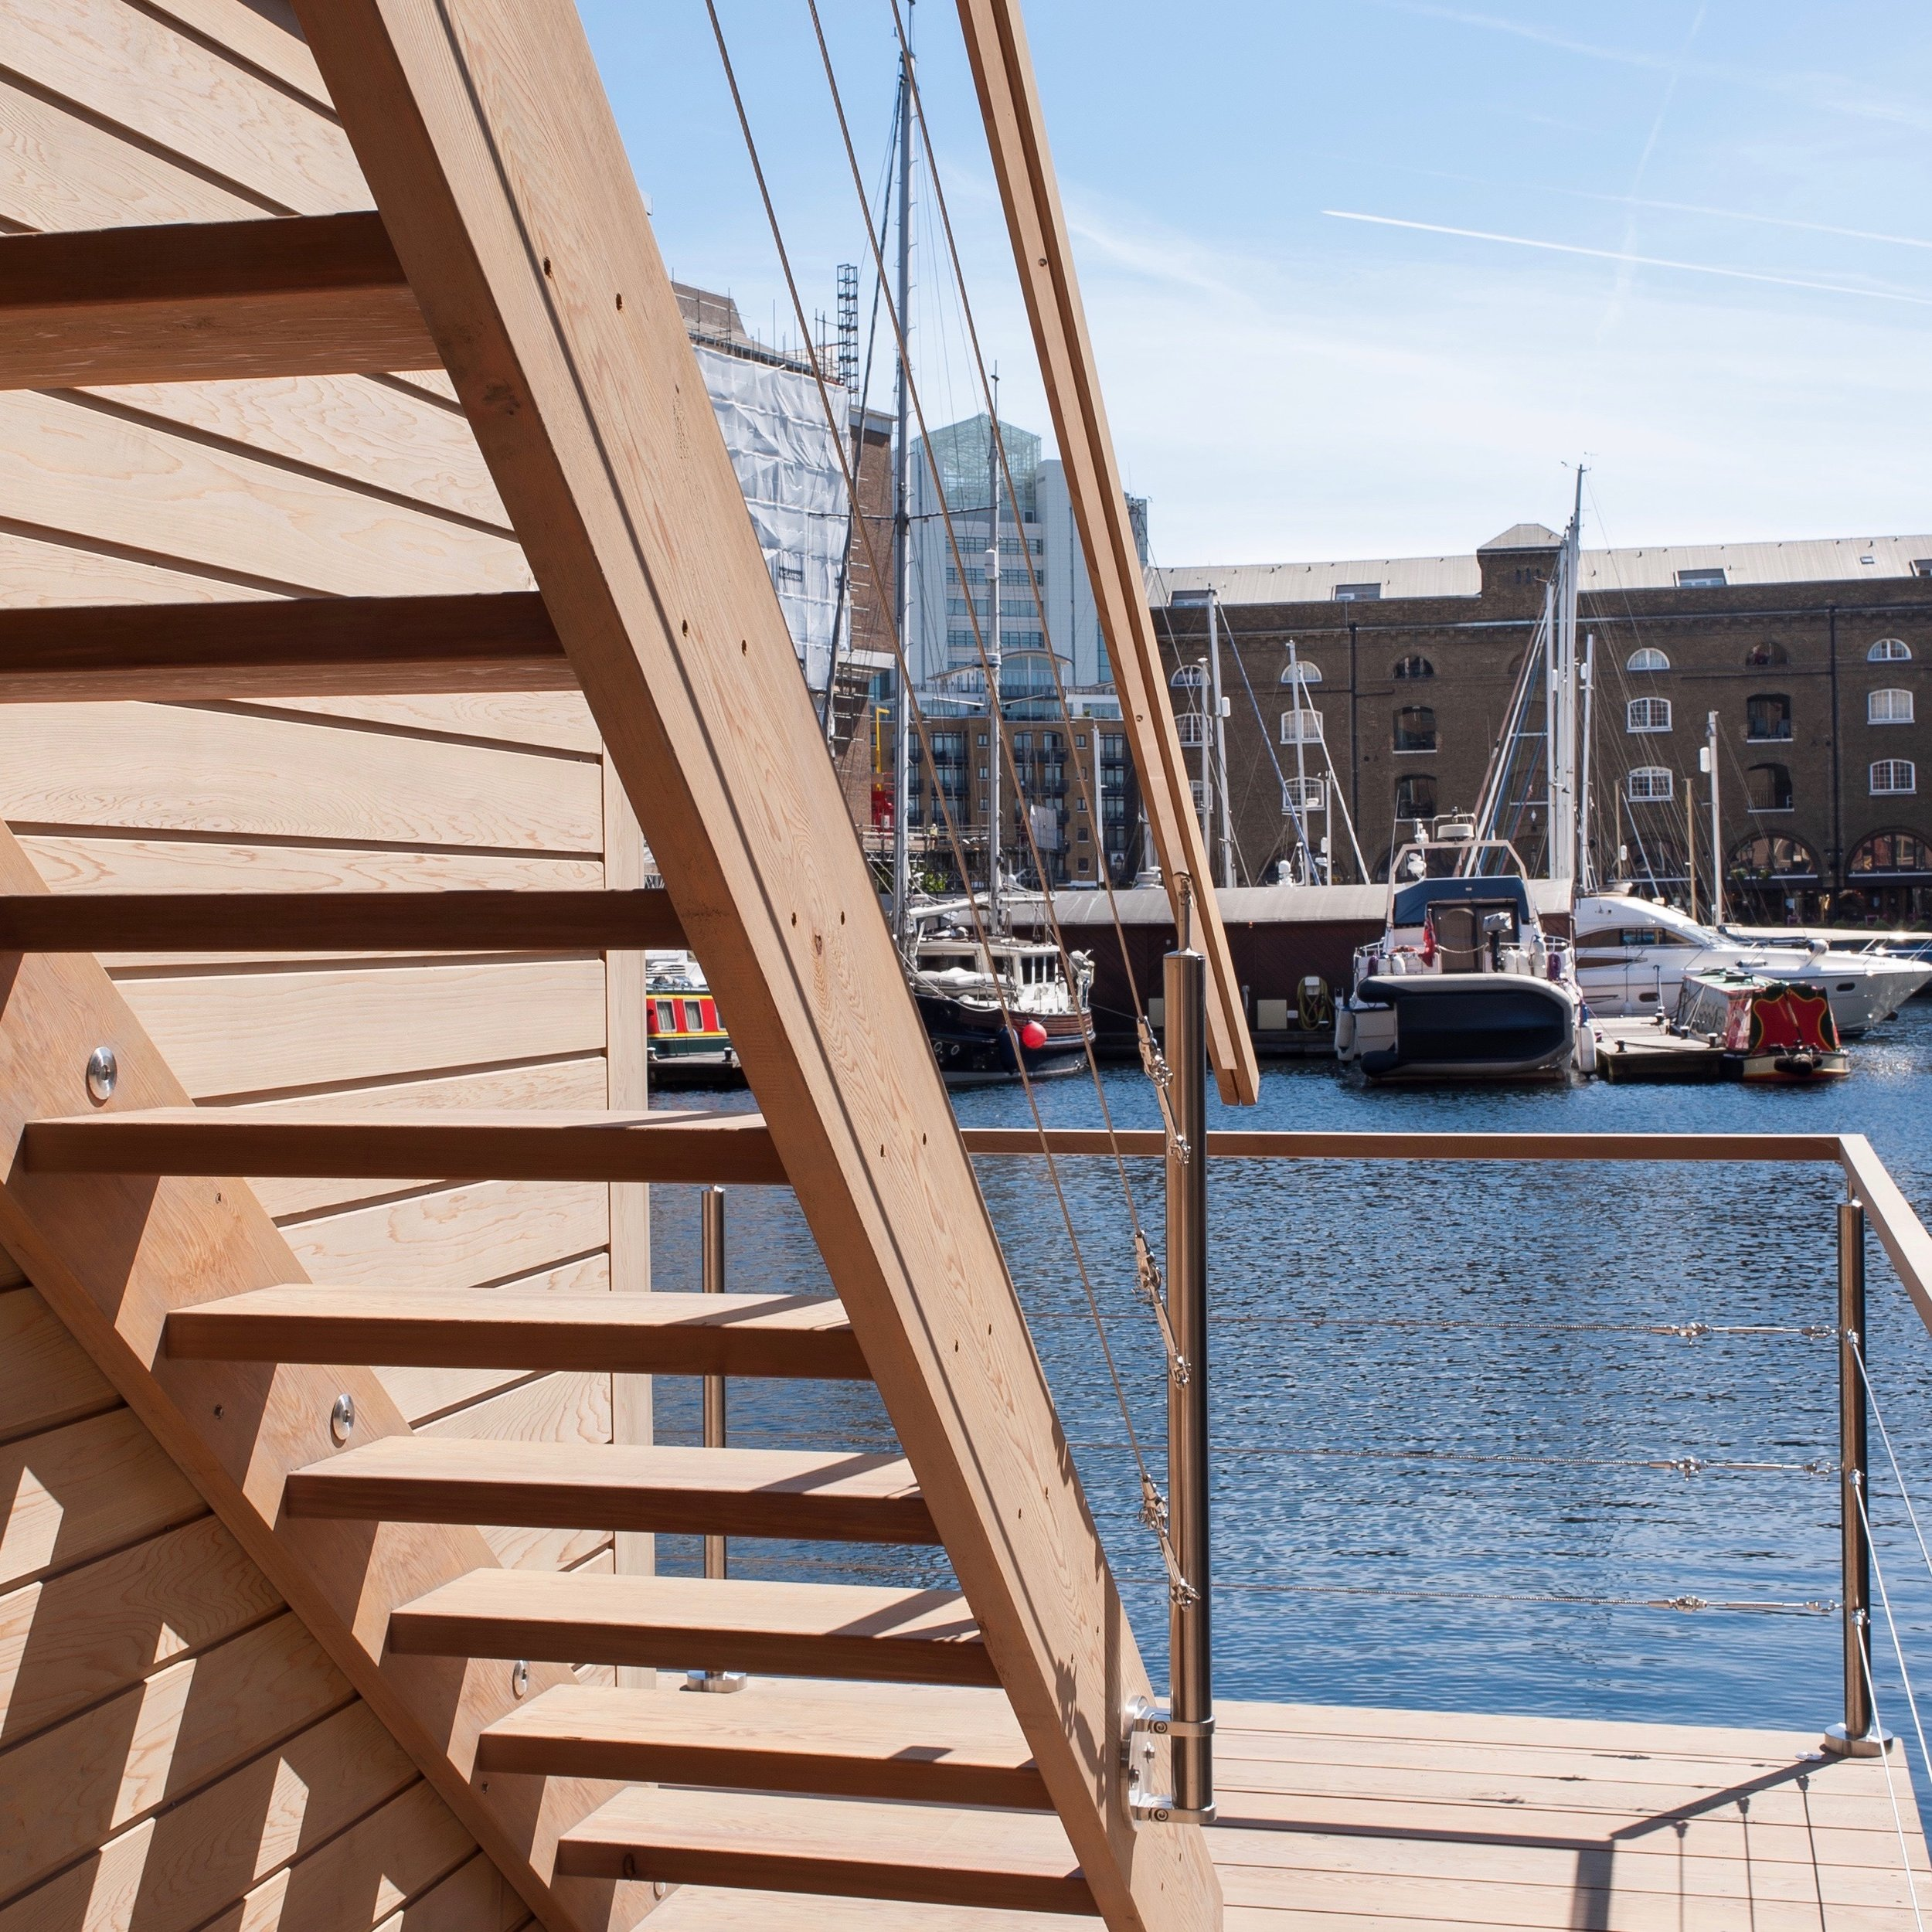 Roof Terrace Stairs St Katharine Docks.jpg